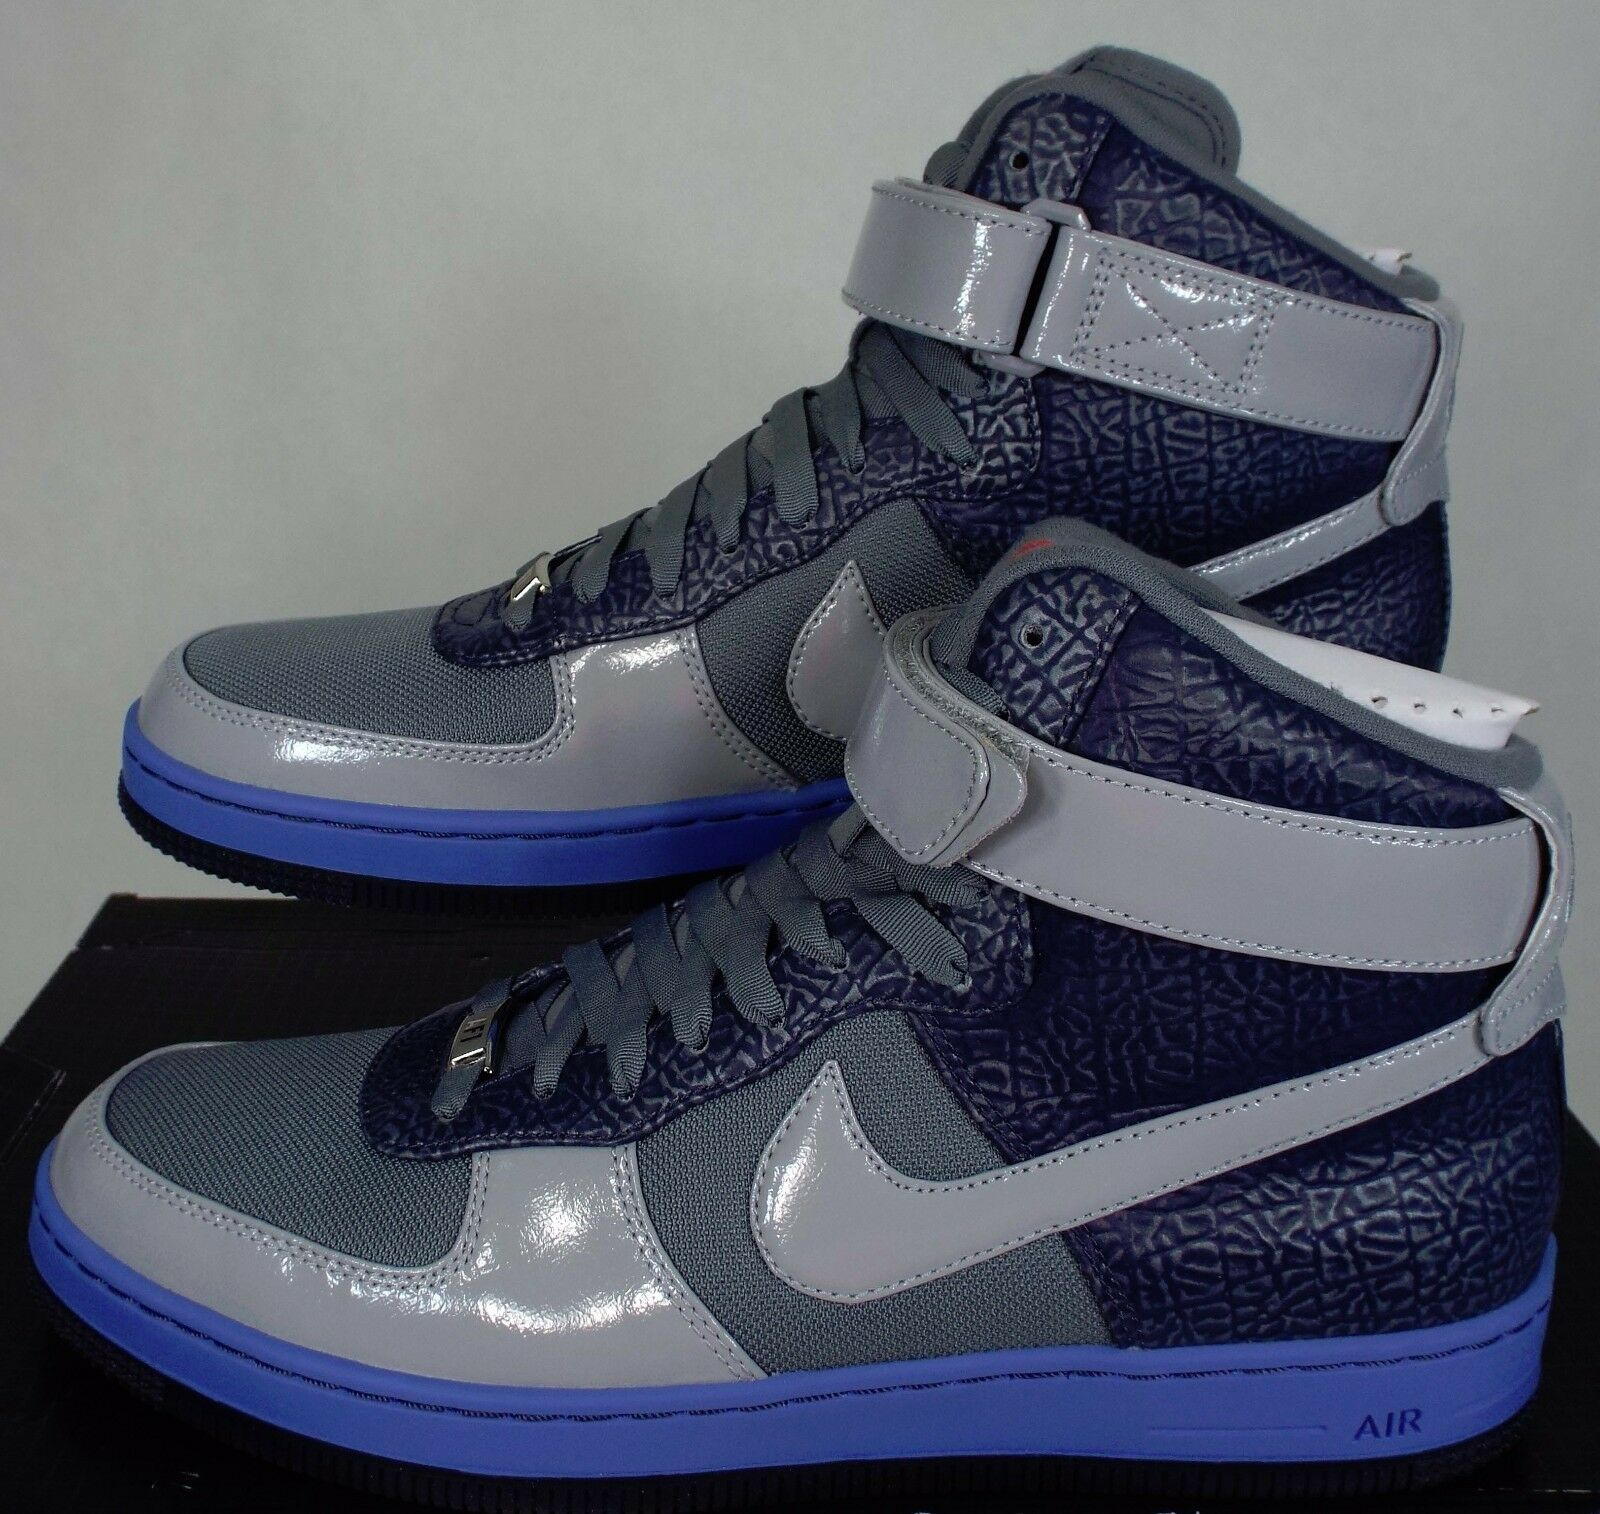 New Downtown Hommes 9.5 NIKE AF1 Downtown New HI Gris Navy Basketball Chaussures  145 574887-001 037bda